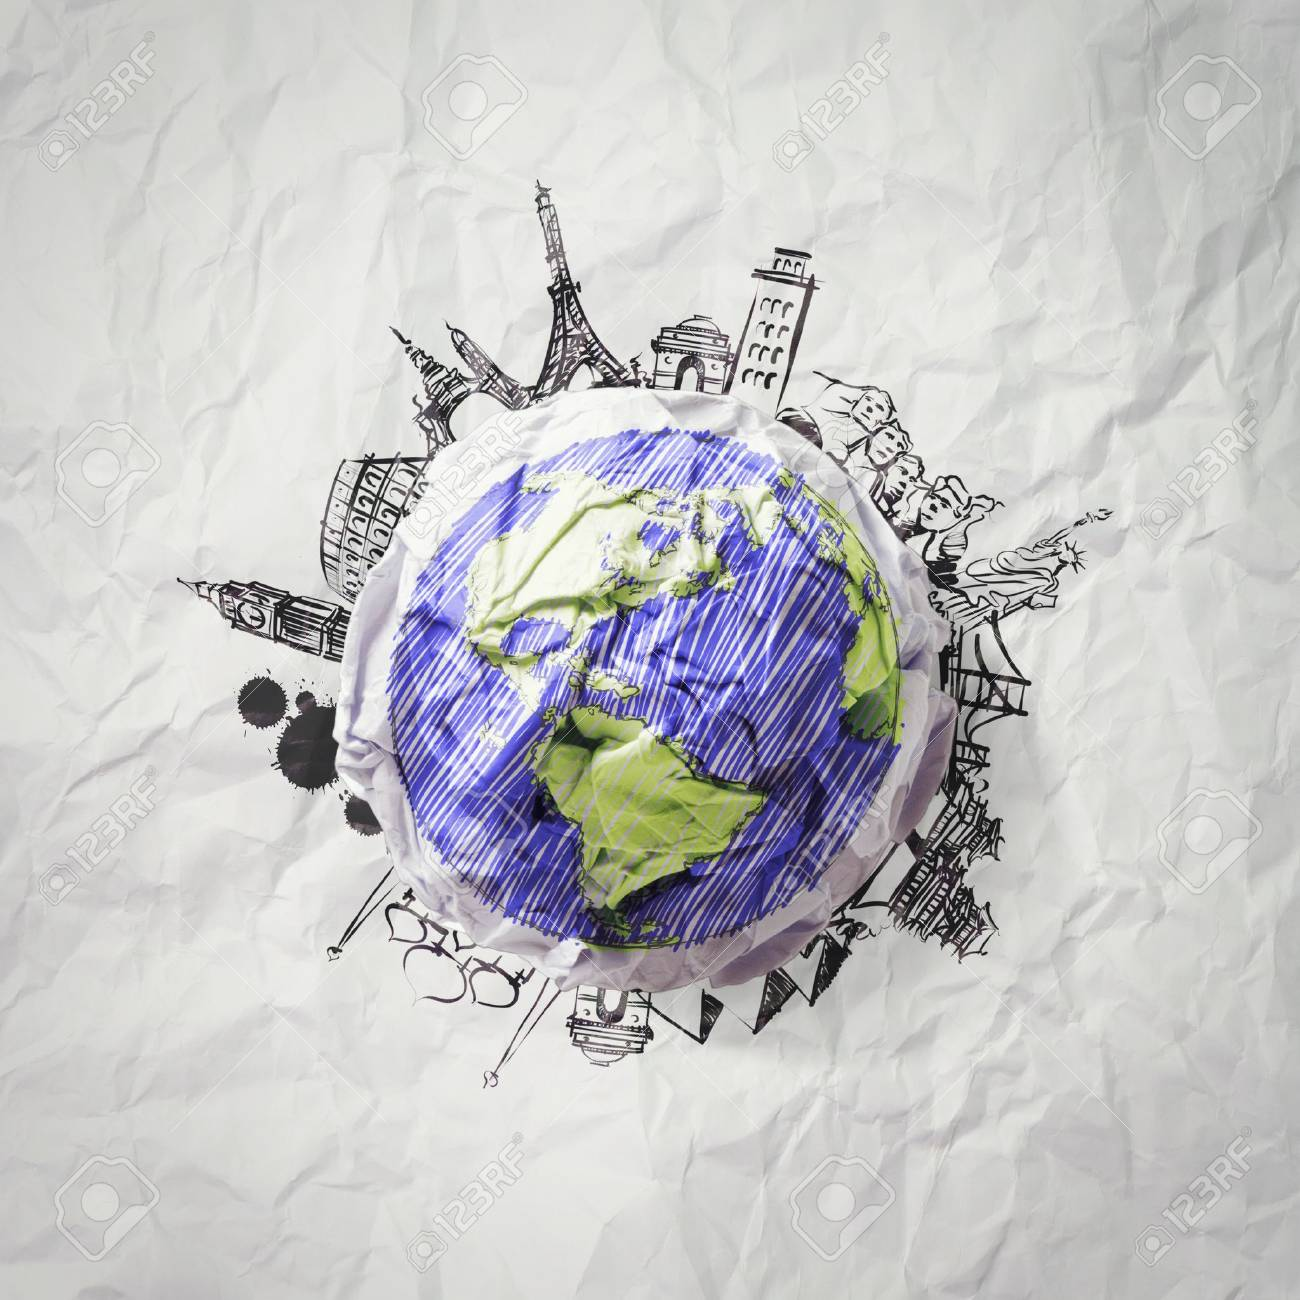 crumpled paper and traveling around the world as concept Stock Photo - 22007970